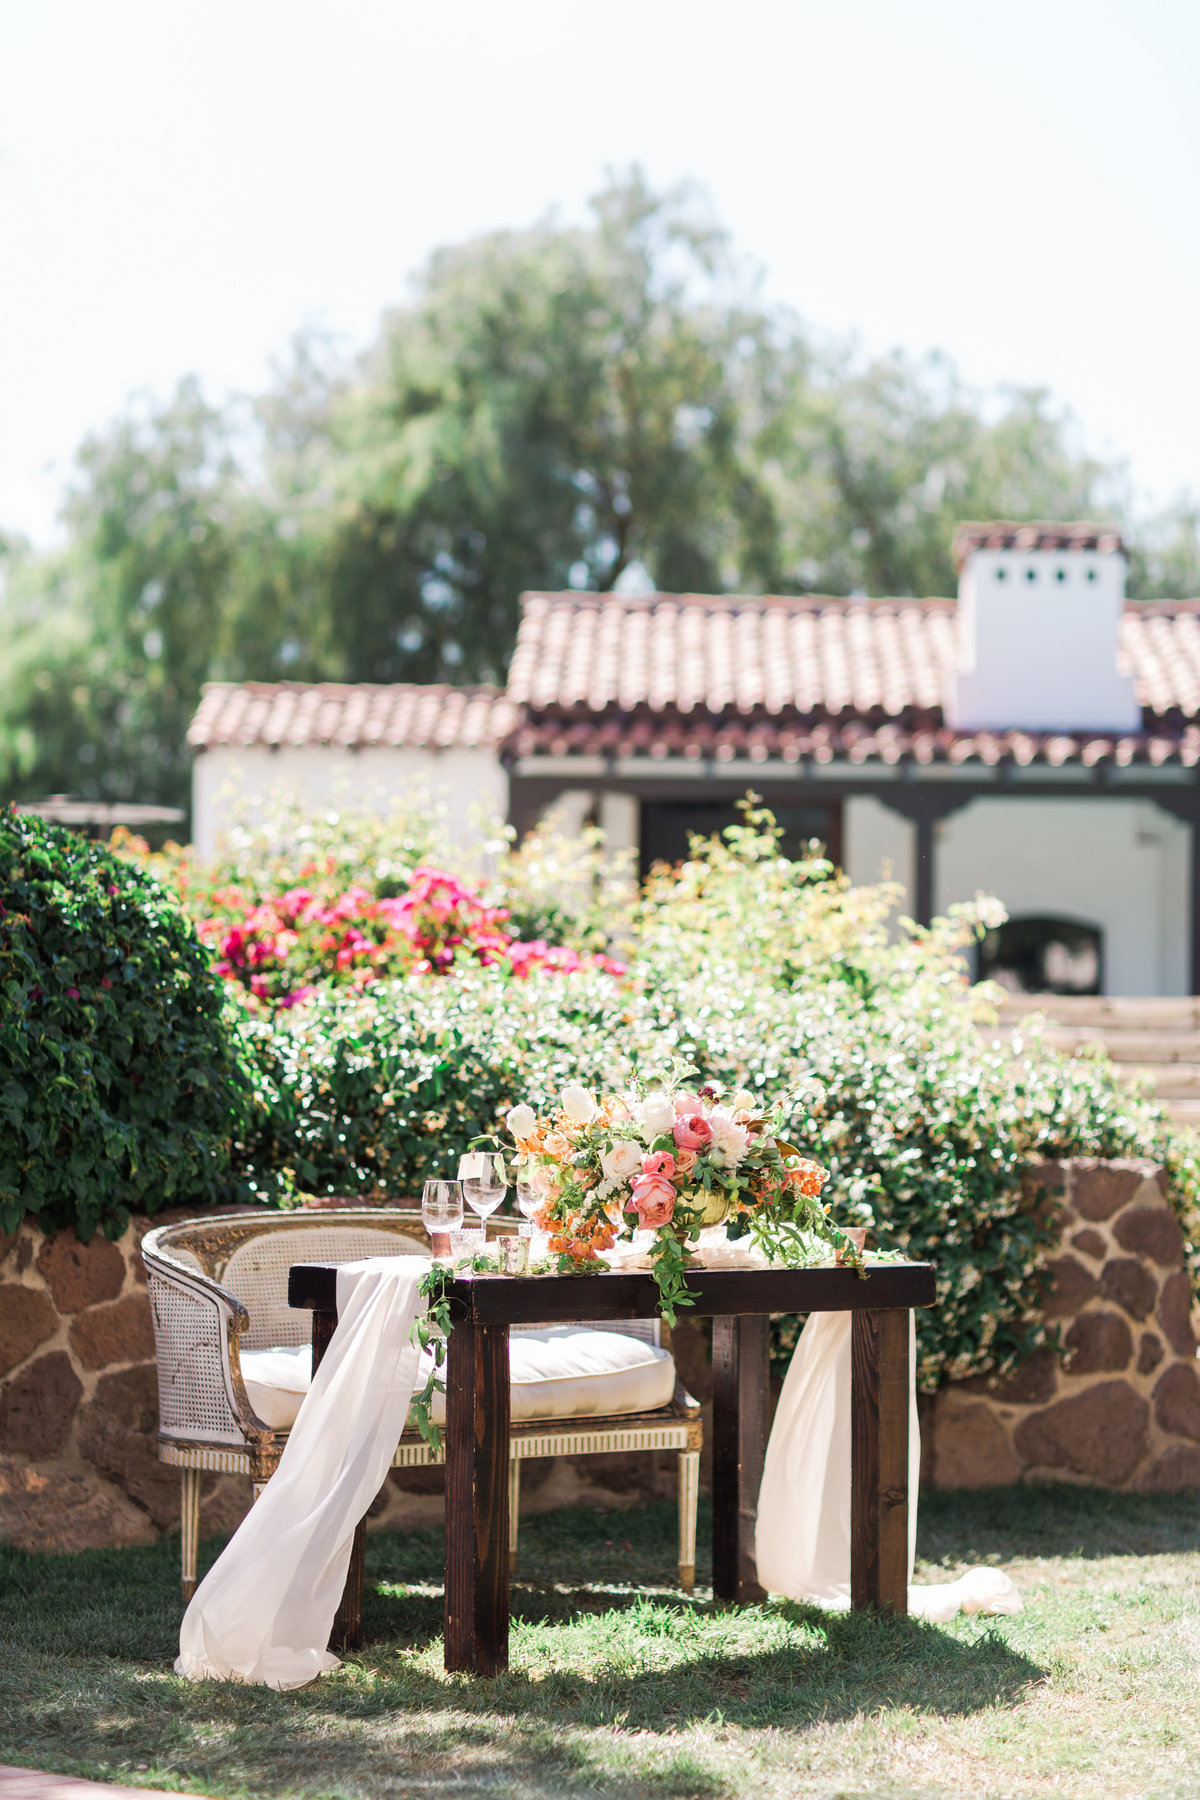 Quail_Ranch_Blush_California_Wedding_Valorie_Darling_Photography - 86 of 151